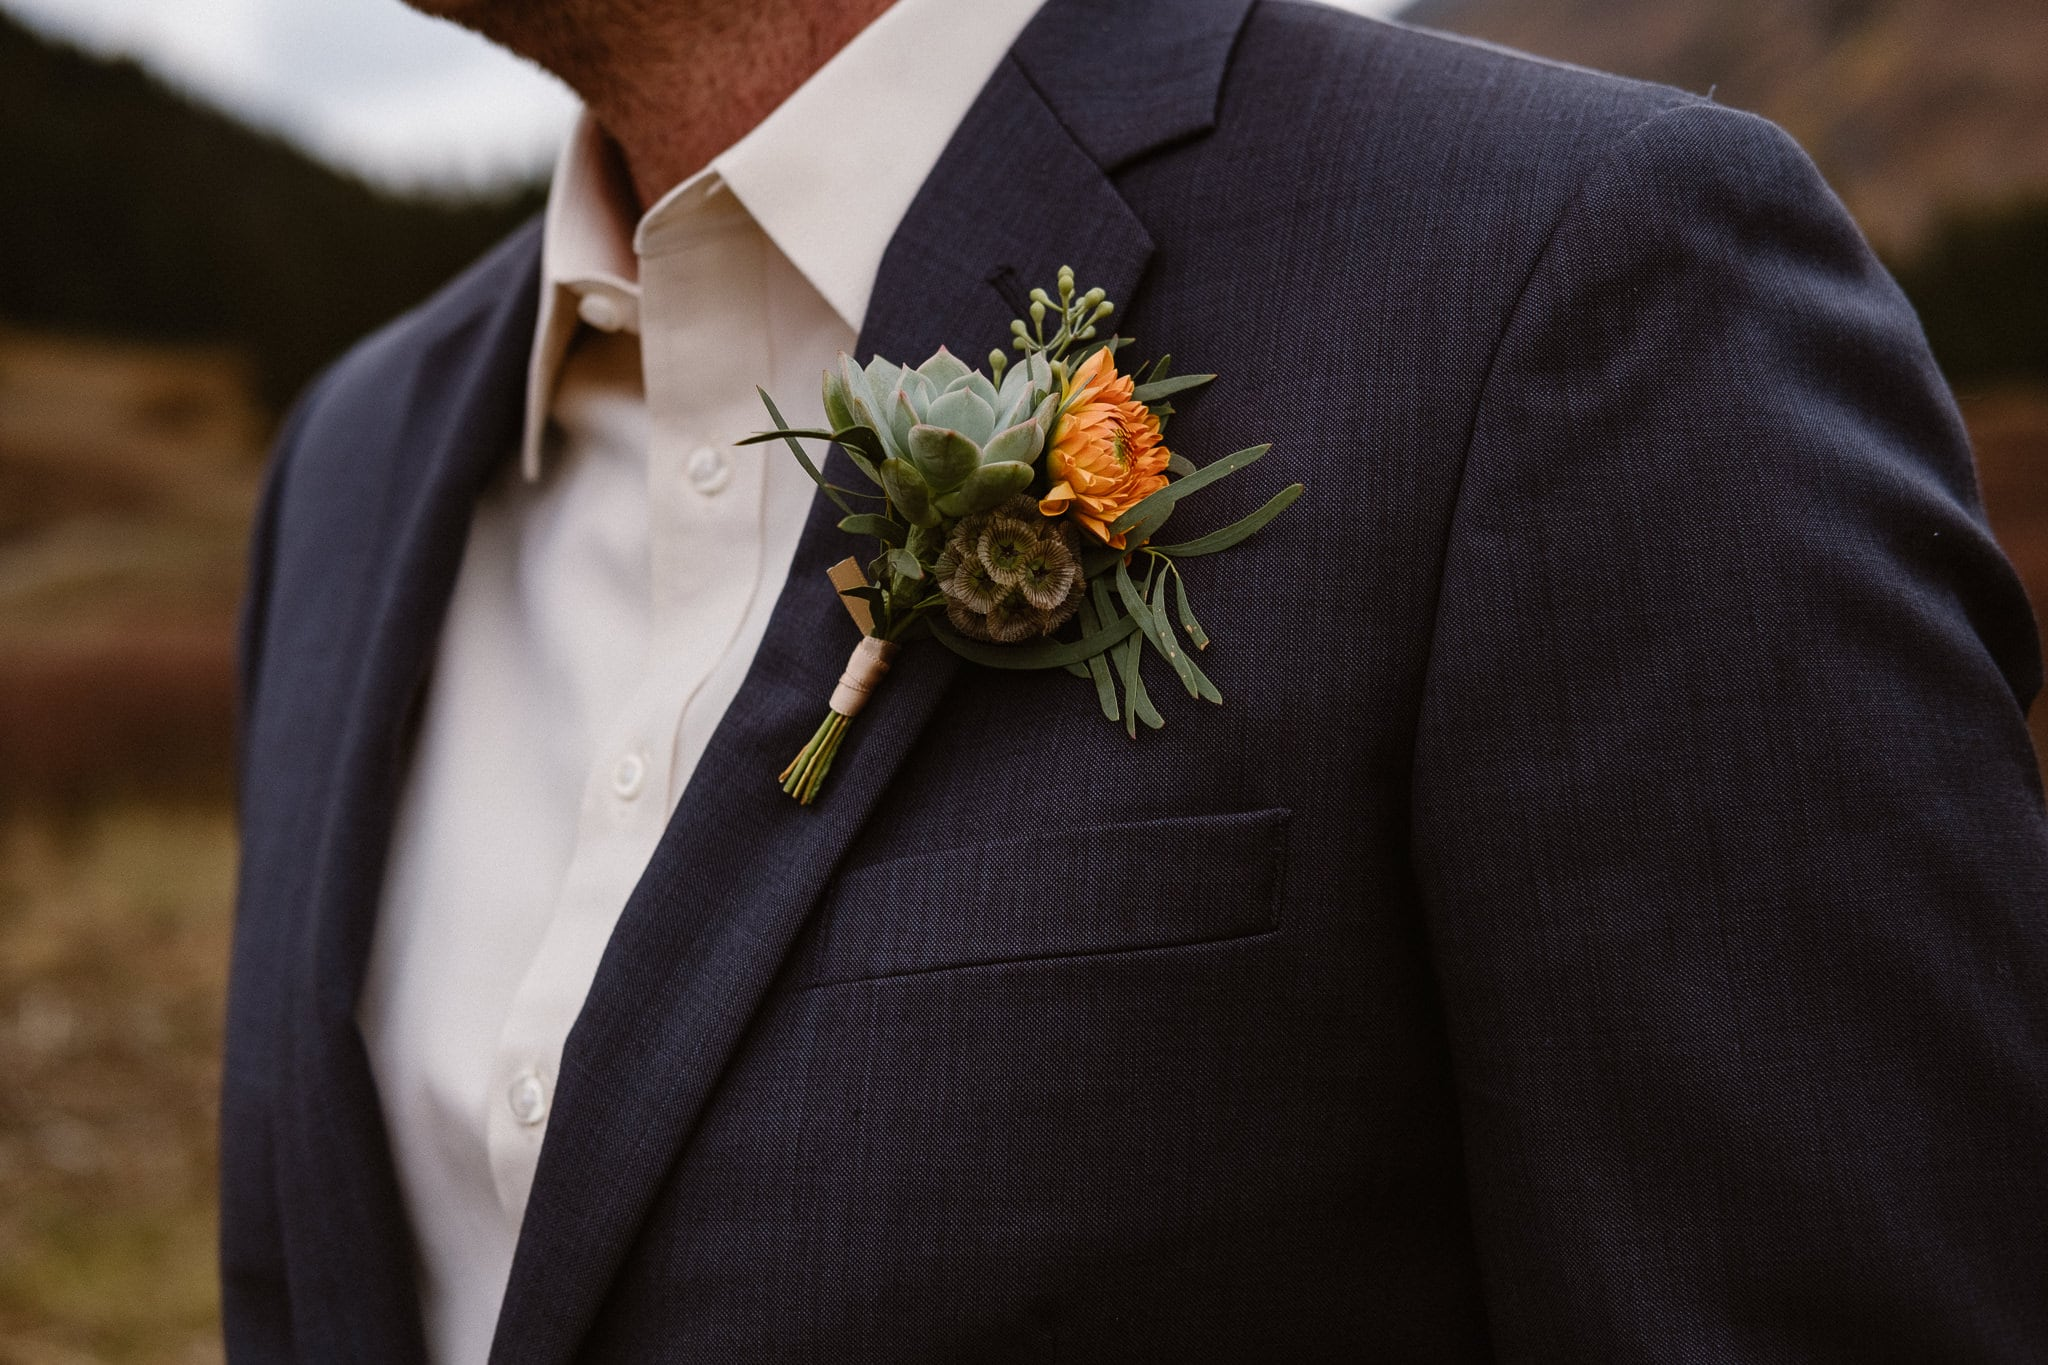 Crested Butte Wedding Photographer, Scarp Ridge Lodge intimate elopement, self solemnized elopement in Colorado, bride and groom portraits, Colorado mountain adventure wedding, groom with orange and green boutonniere by From the Ground Up Flowers